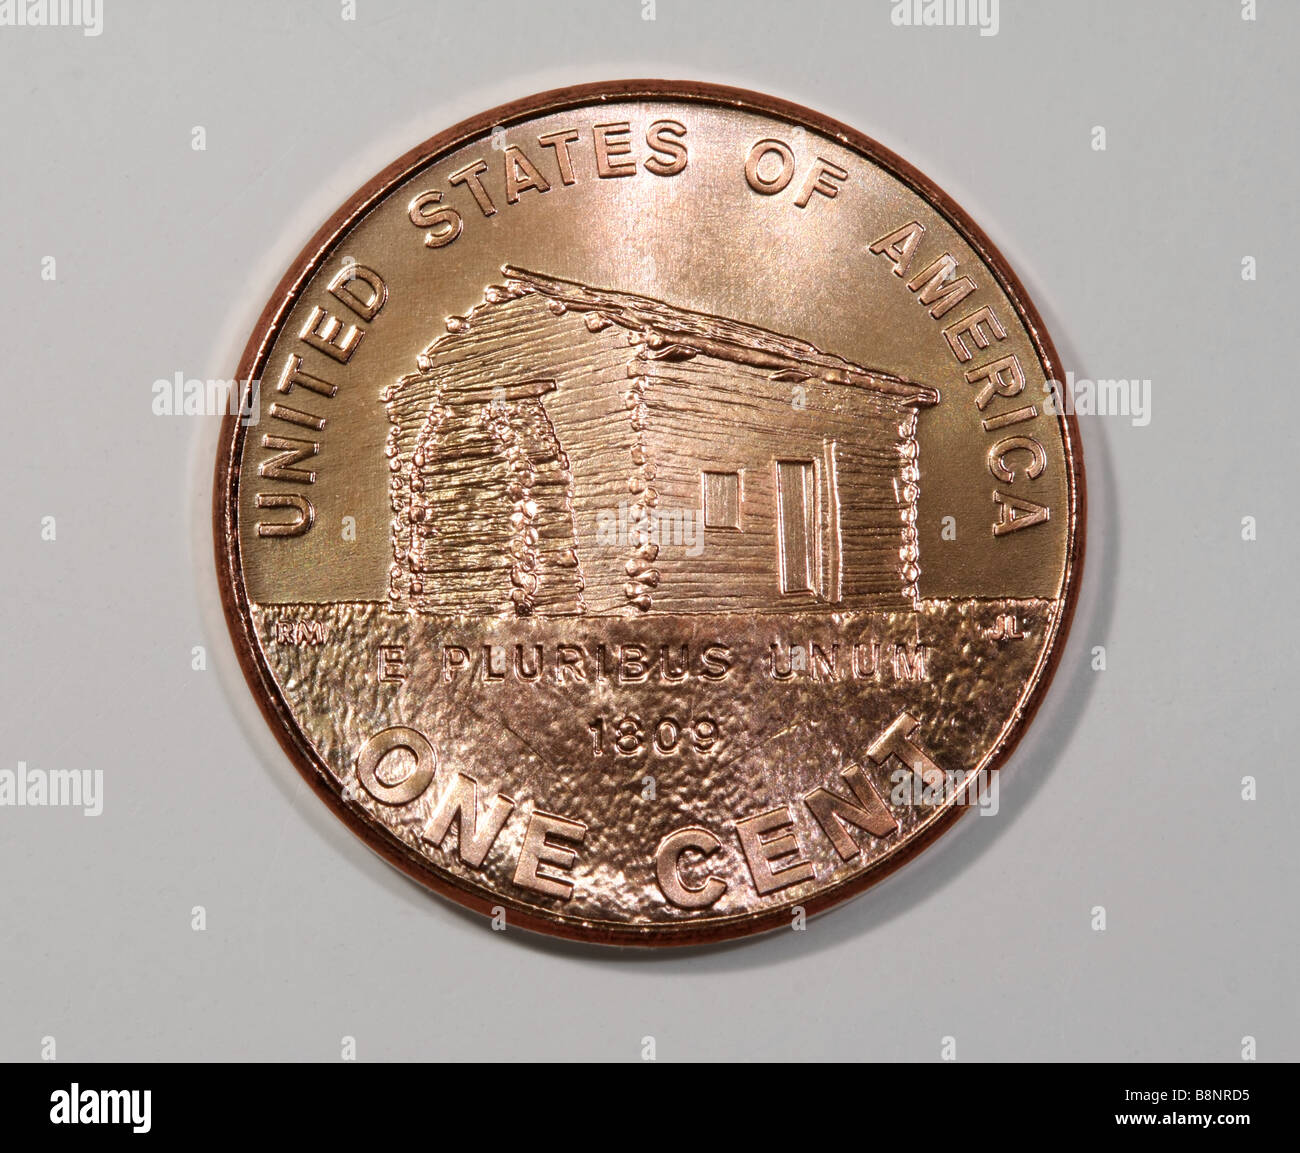 Abraham Lincoln 2009 Bicentennial Penny - Stock Image